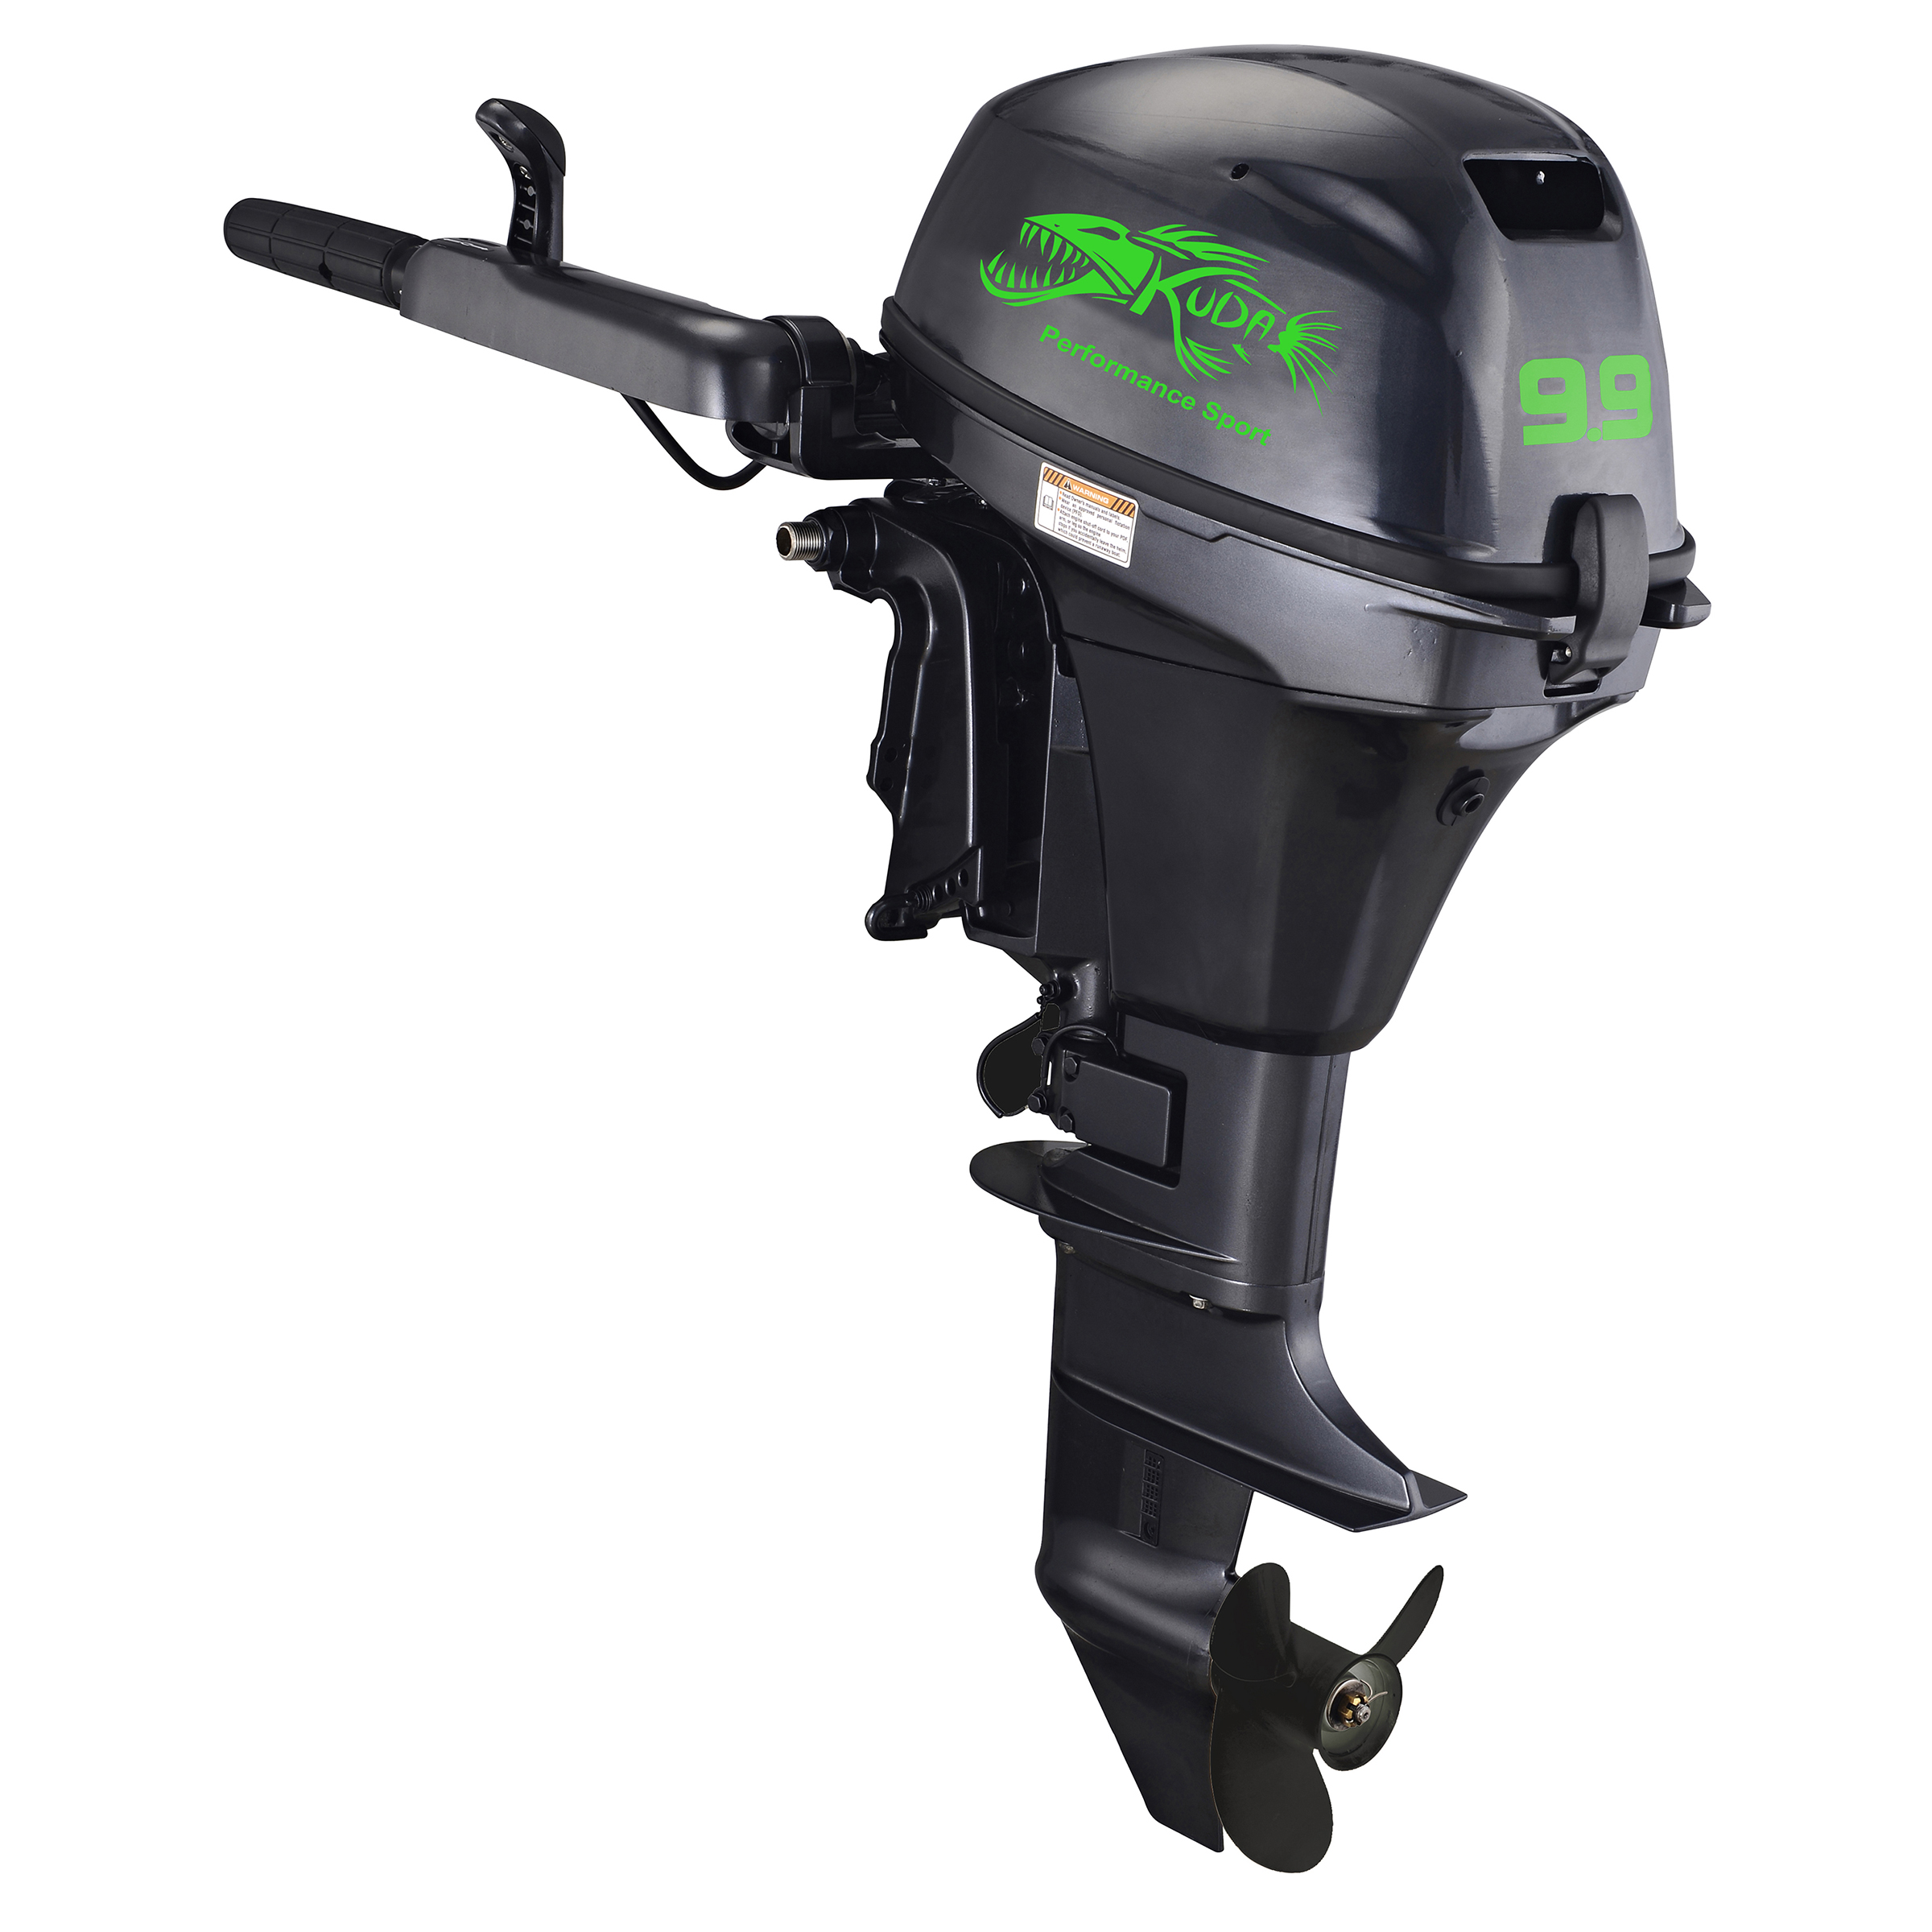 "Kuda 4 Stroke 9.9 HP Horse Power Outboard Motor Tiller, 5000 RPM, 17.9"" Shaft, Recoil Start"